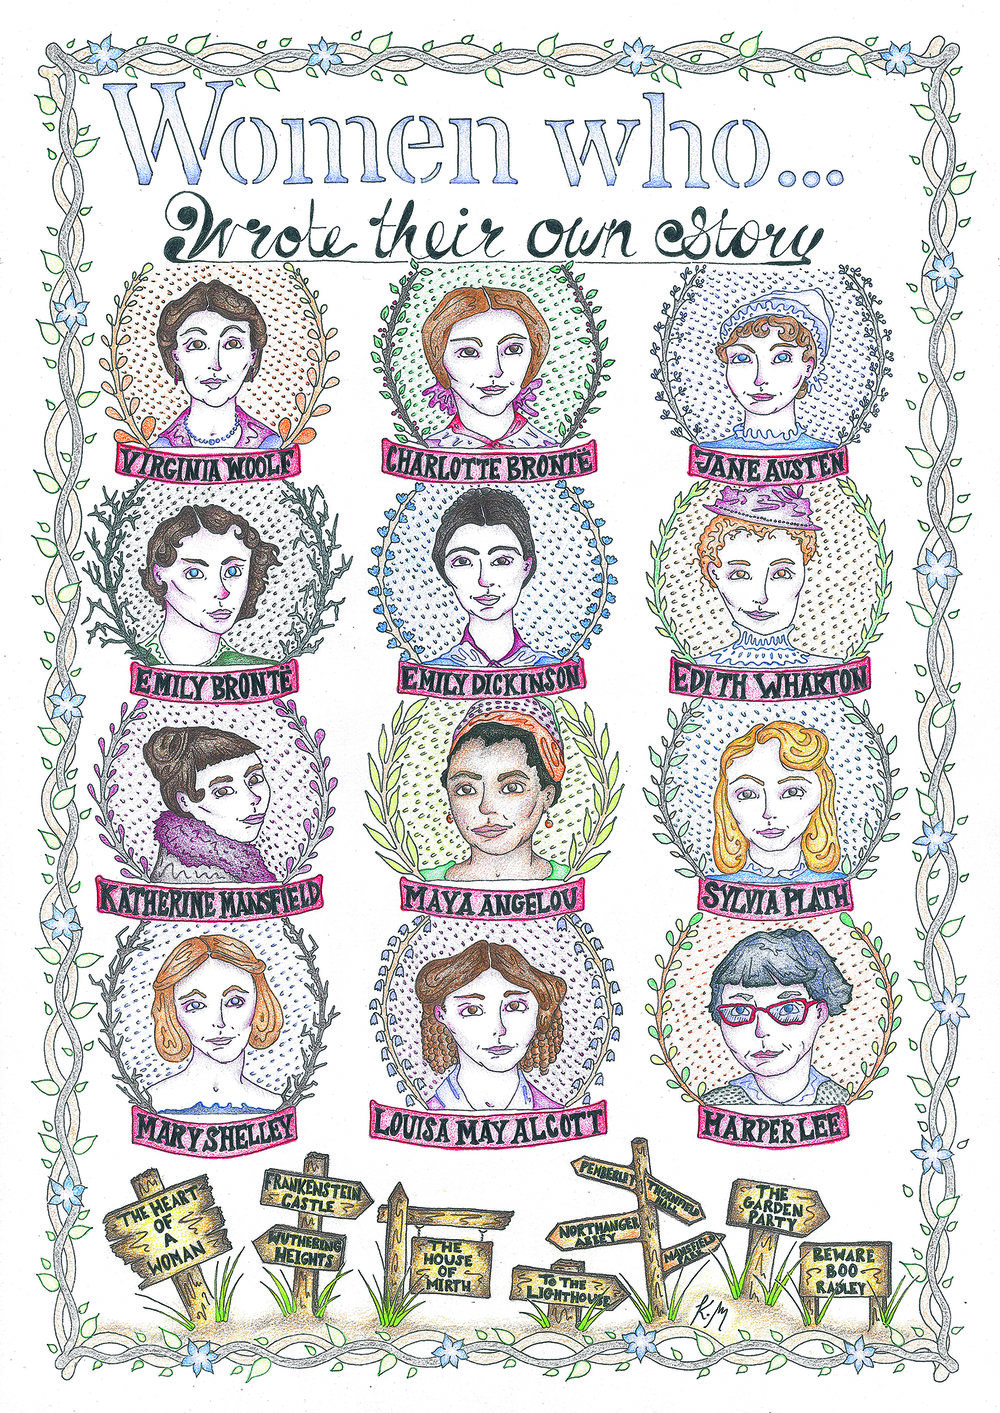 Women Who... - Wrote Their Own StoryAvailable now to inspire women and men young and old.